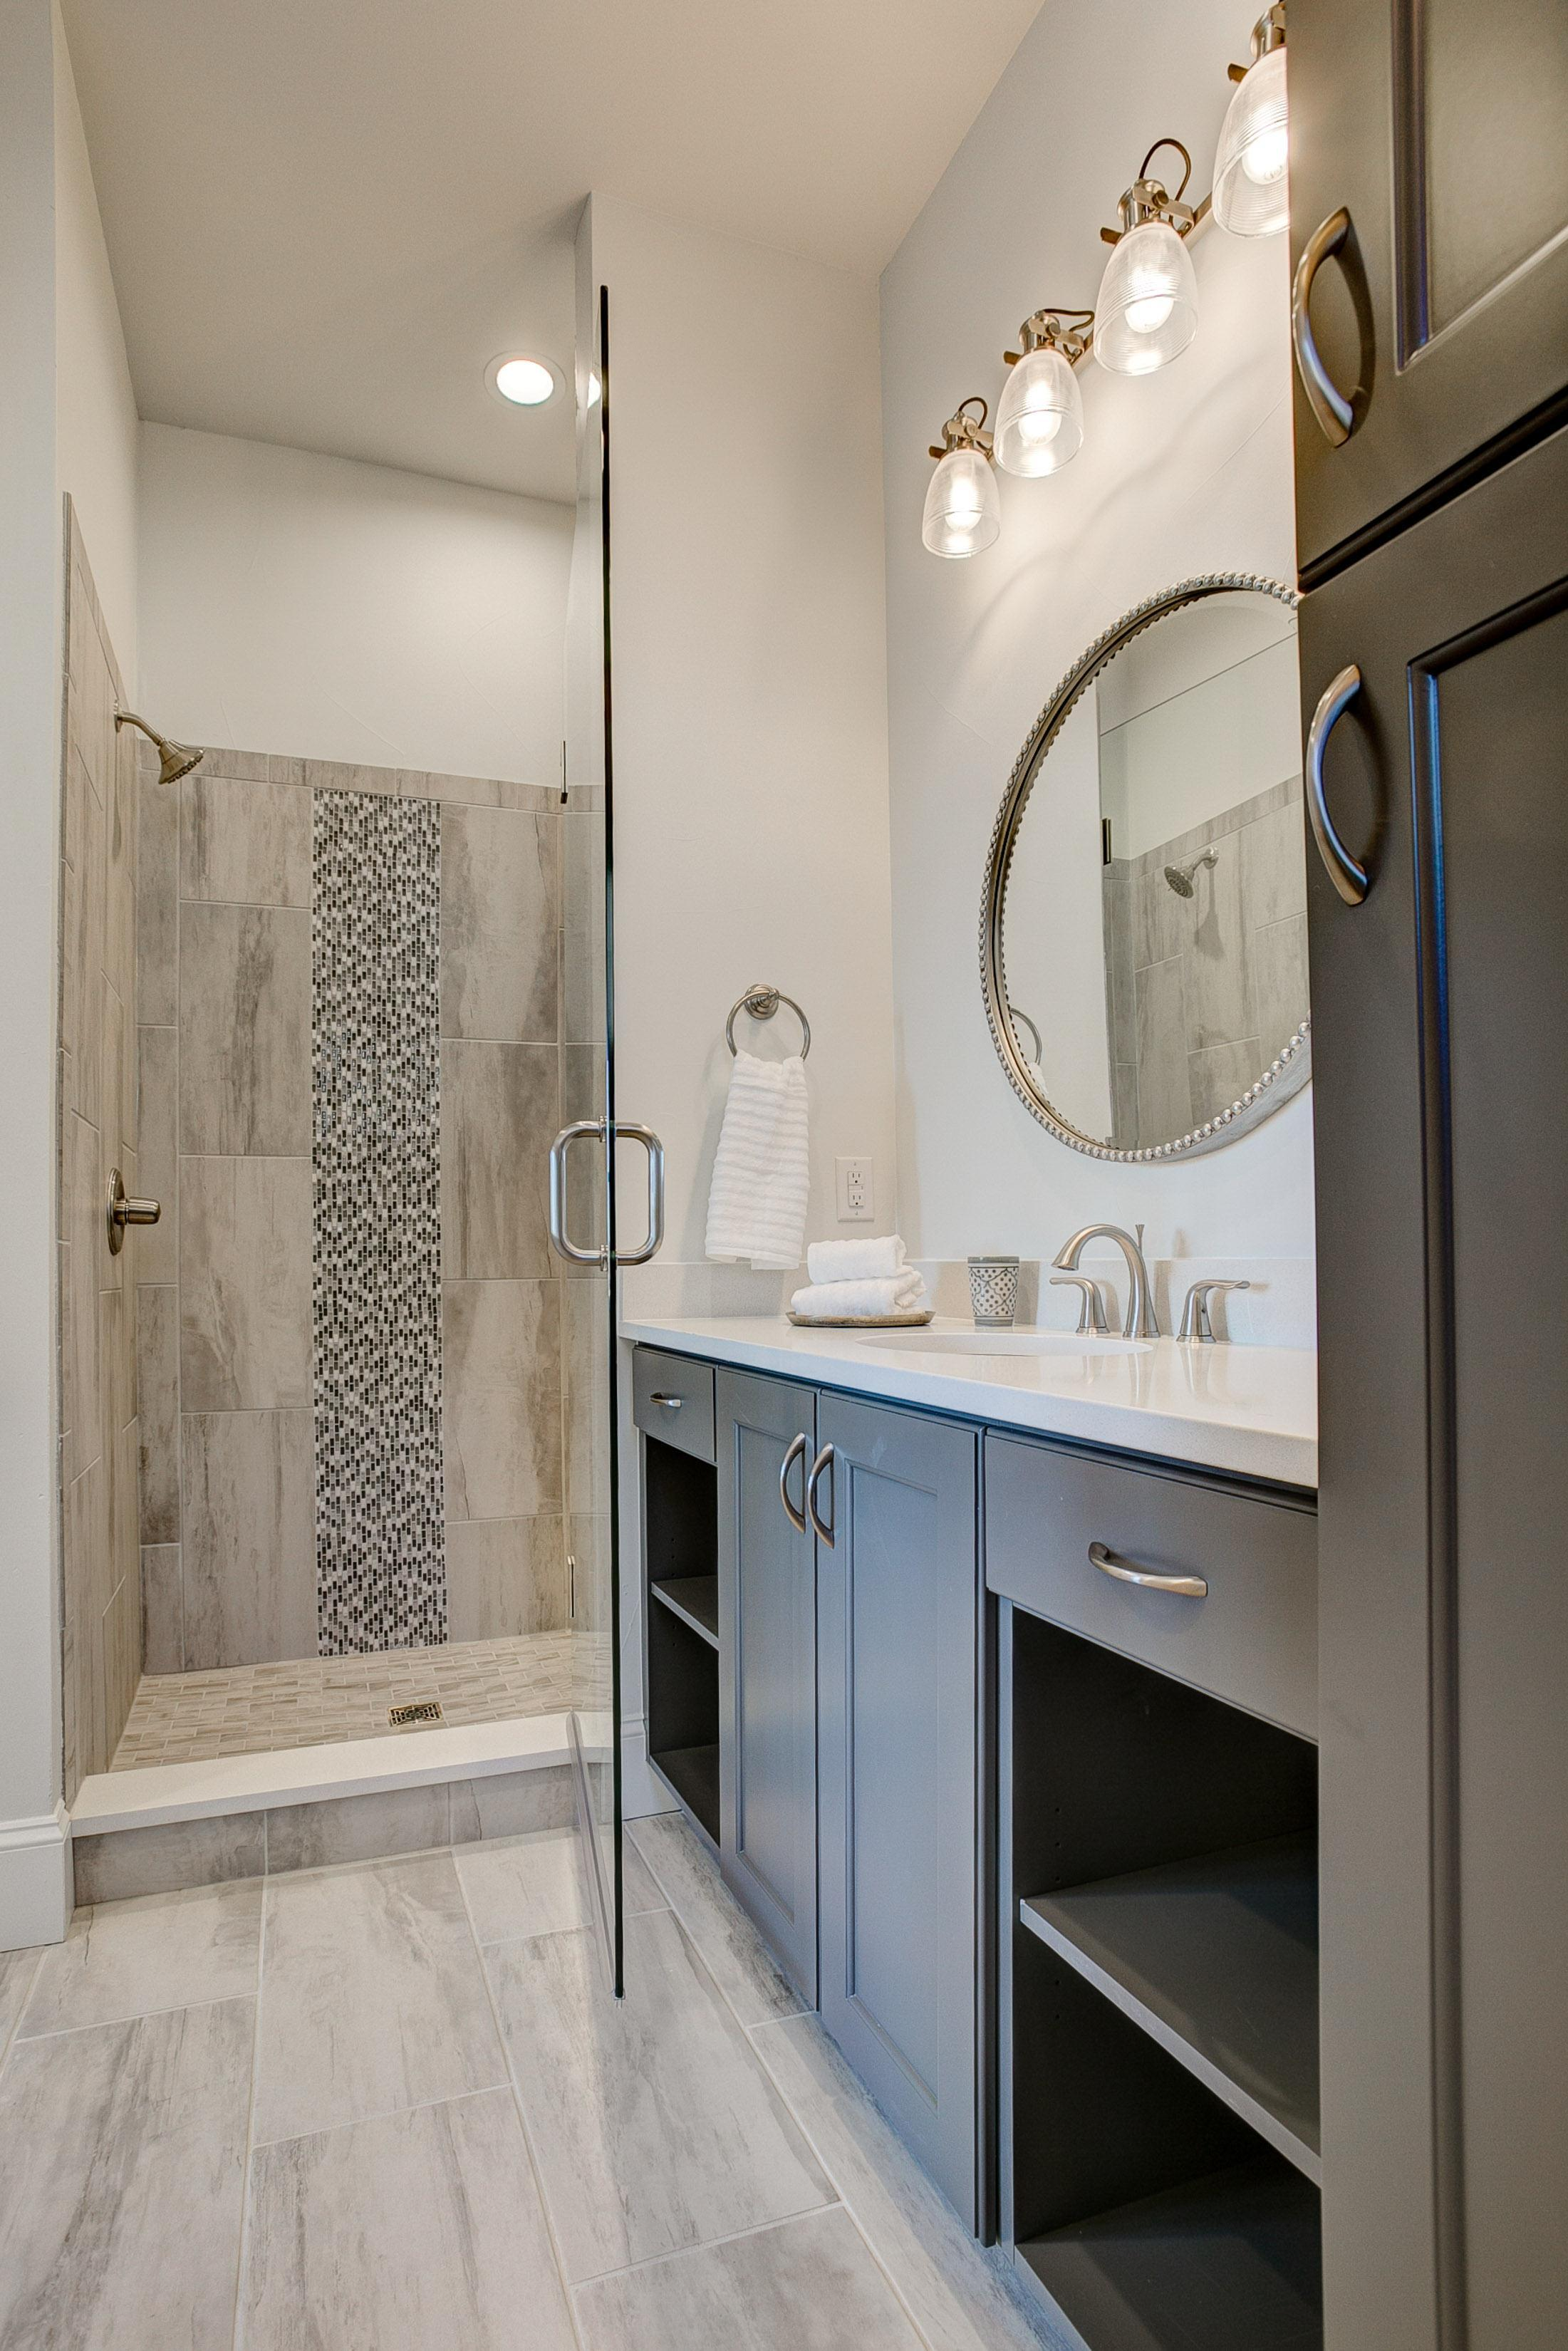 Bathroom featured in the Turnberry By Landmark Homes  in Greeley, CO